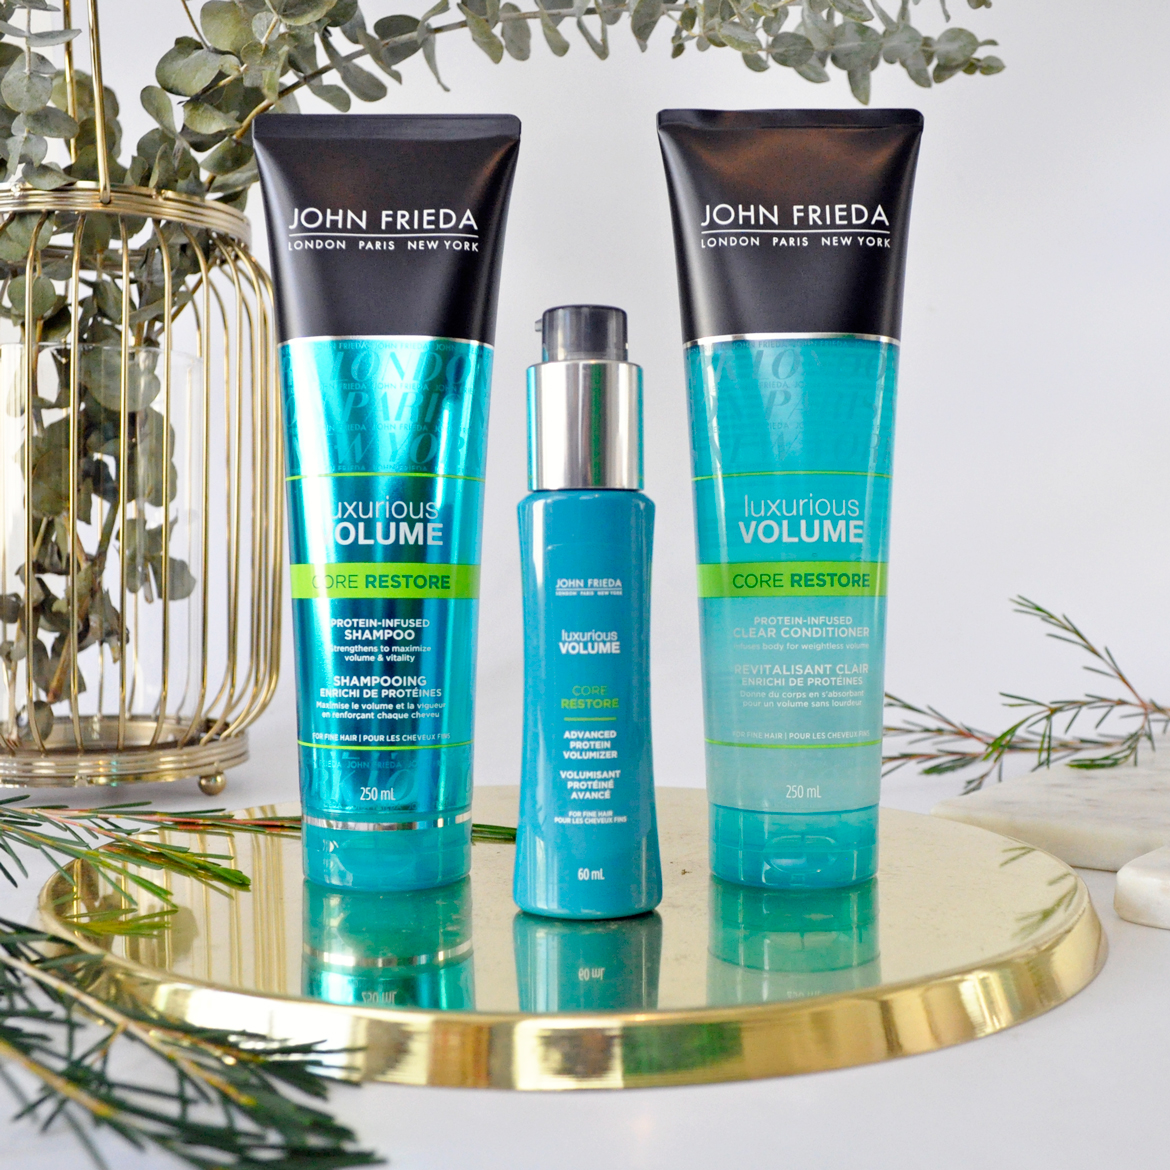 John Freida Luxurious Volume Core Restore Range